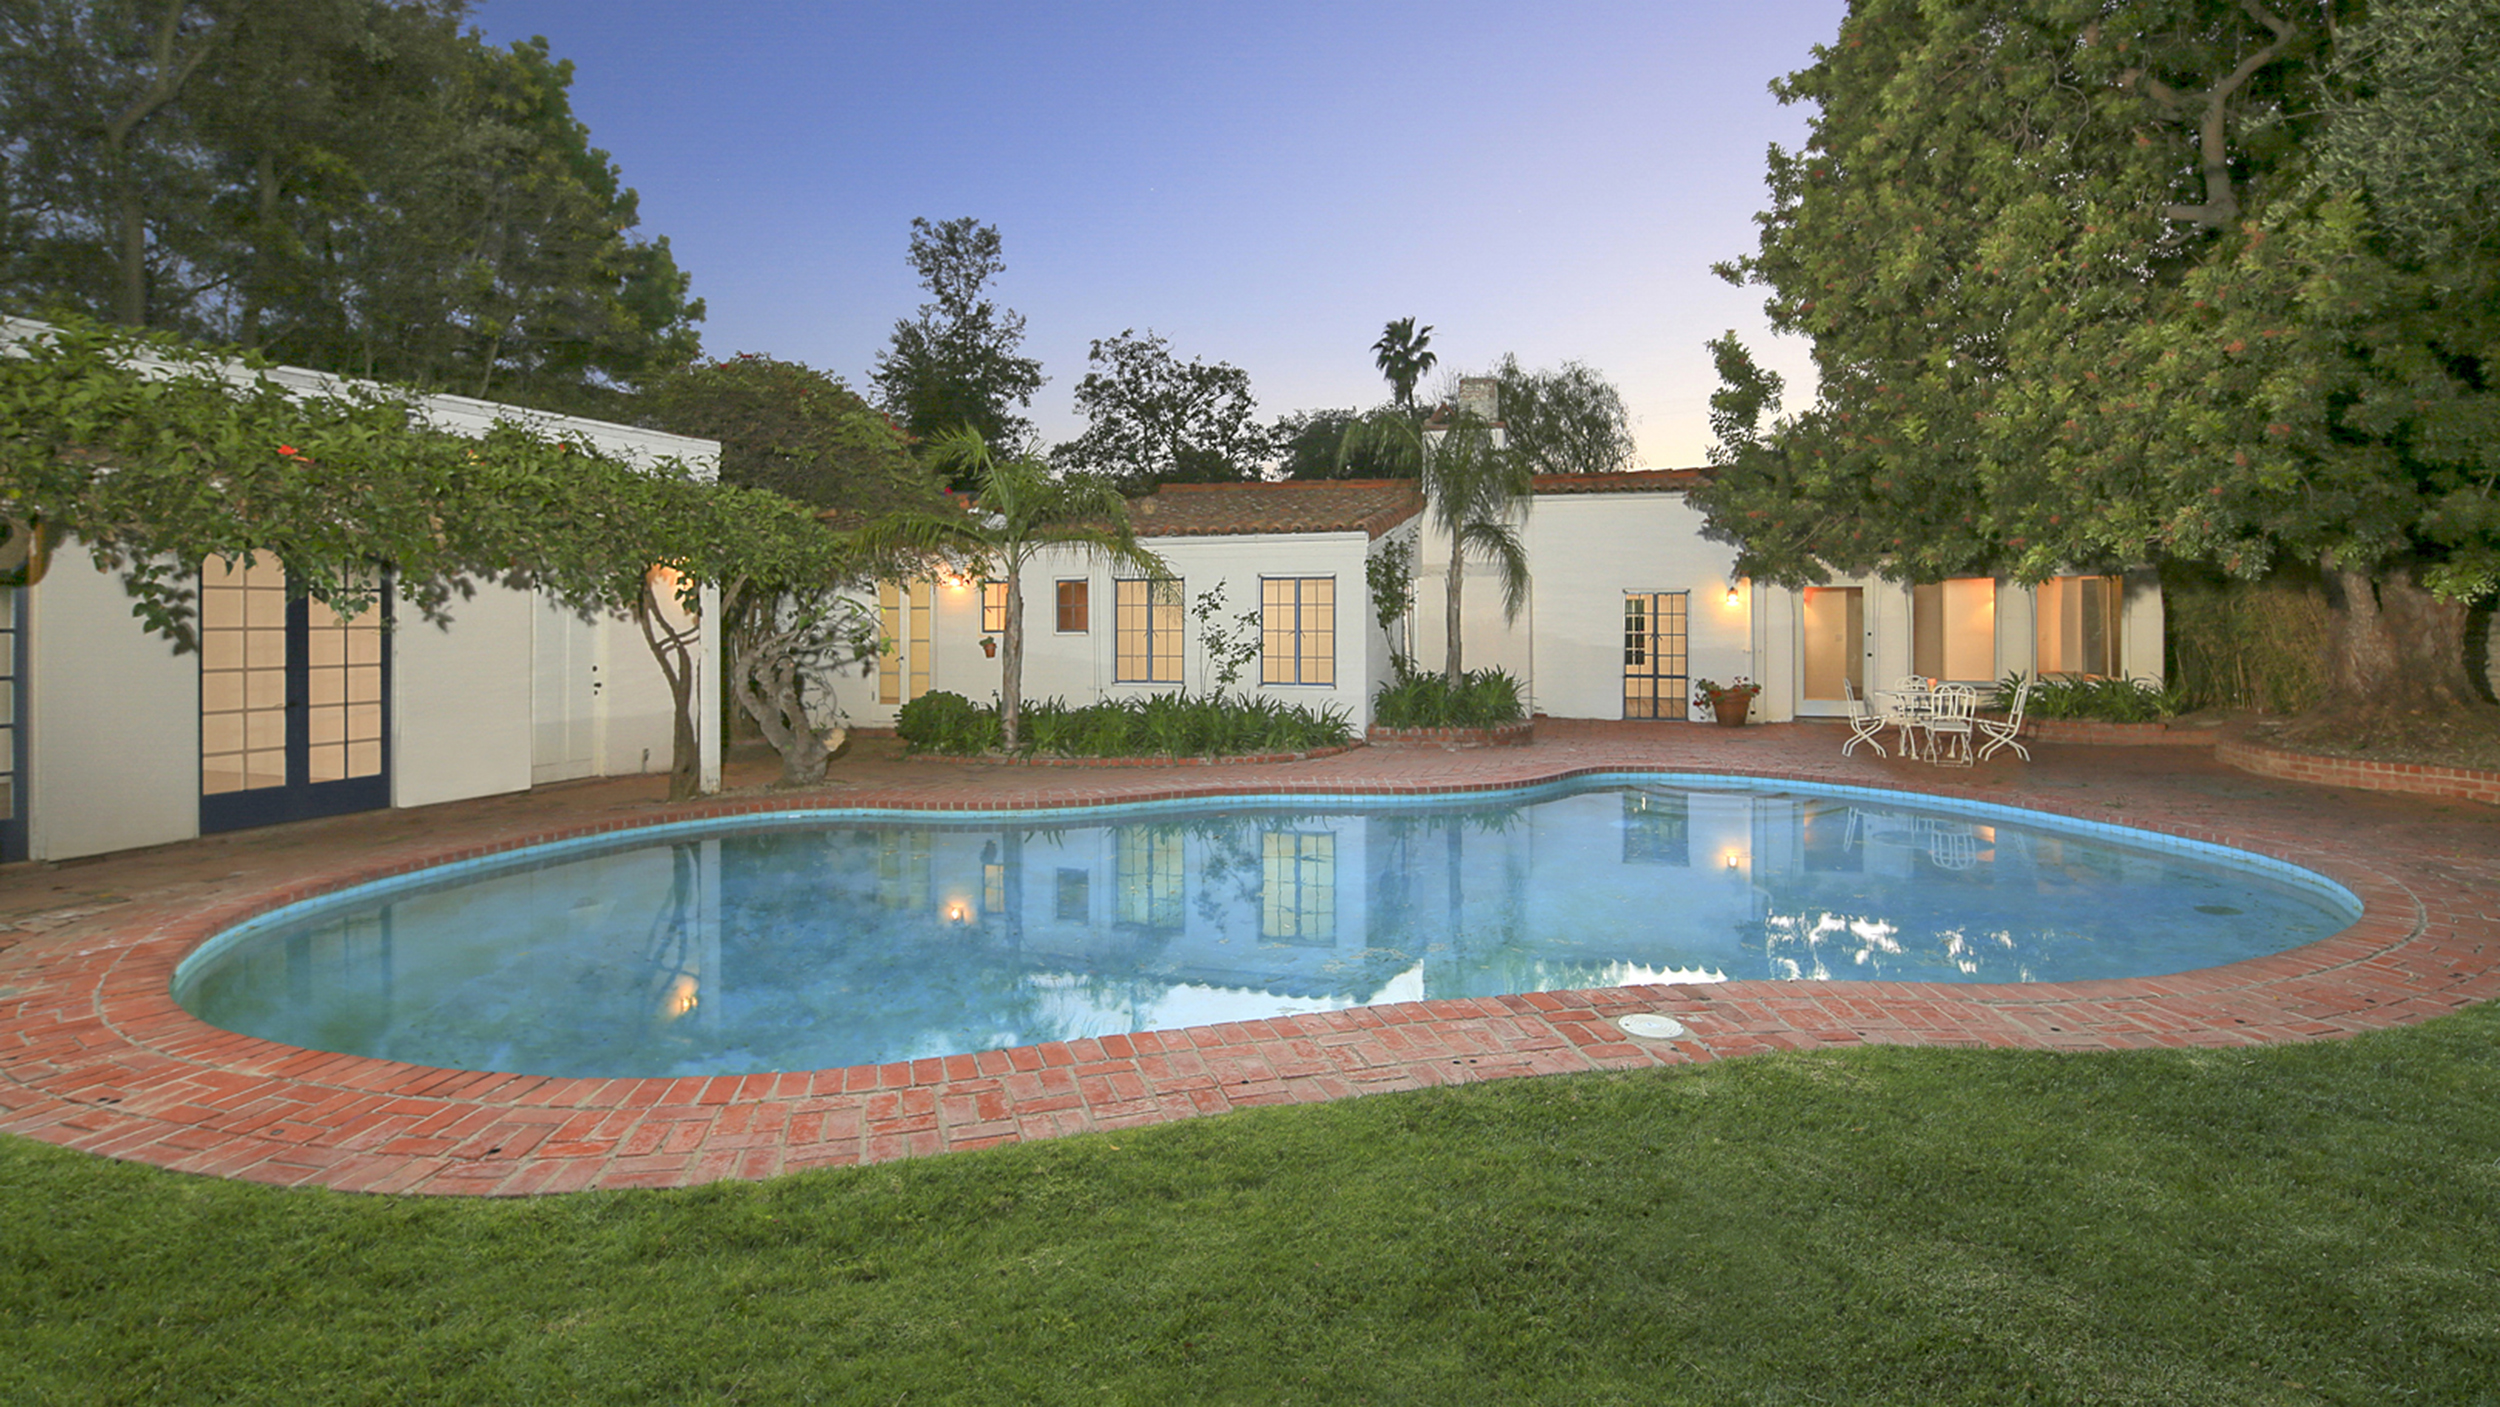 Marilyn Monroes House Marilyn Monroe's Home In Brentwood Los Angeles Sold  Today